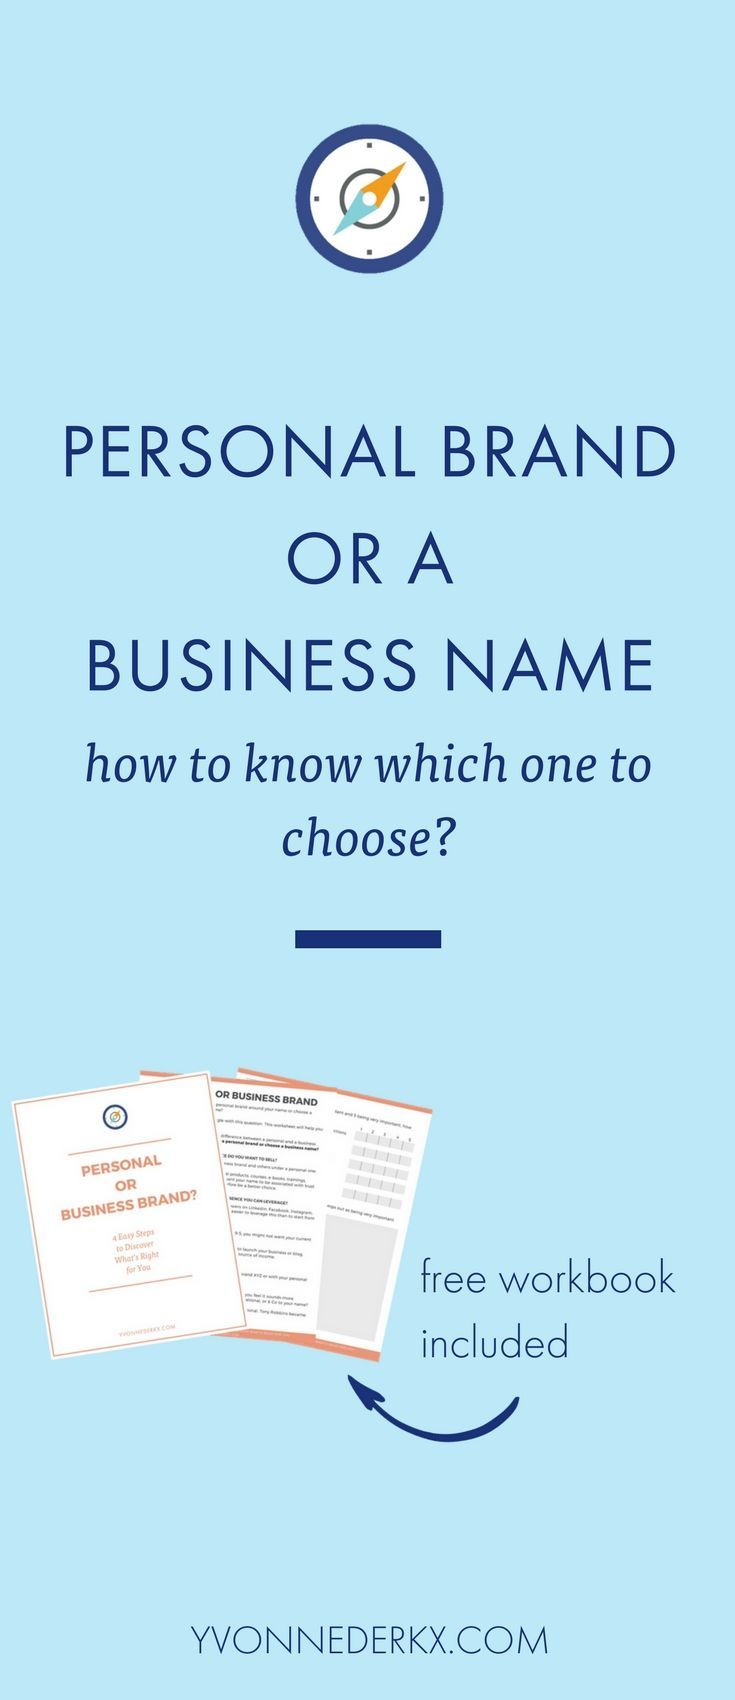 Struggling to choose between a personal or a business brand? Discover what the pros and cons are of each option and how to choose the right one for you.